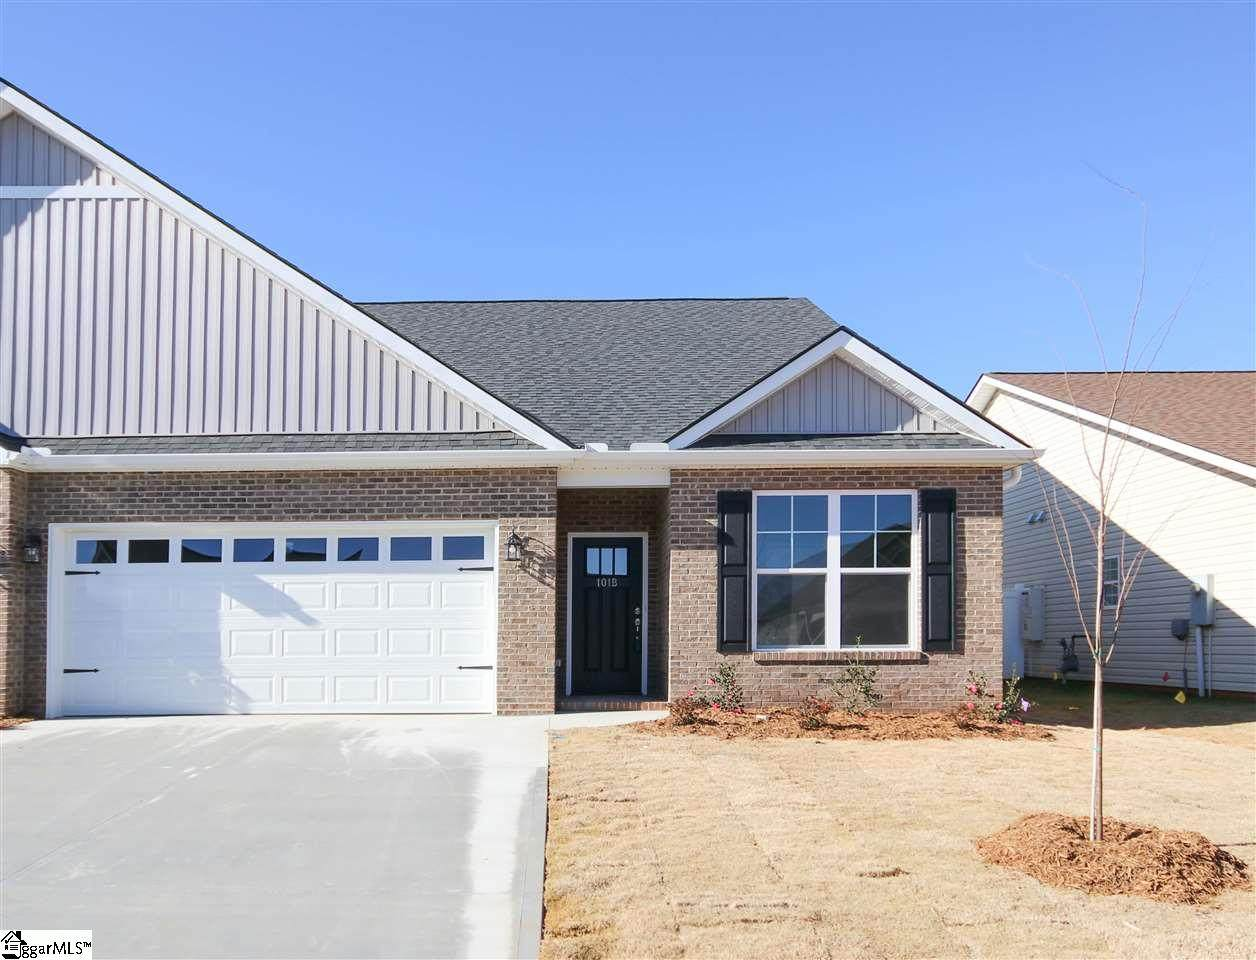 101B Tupelo Lane - Photo 1